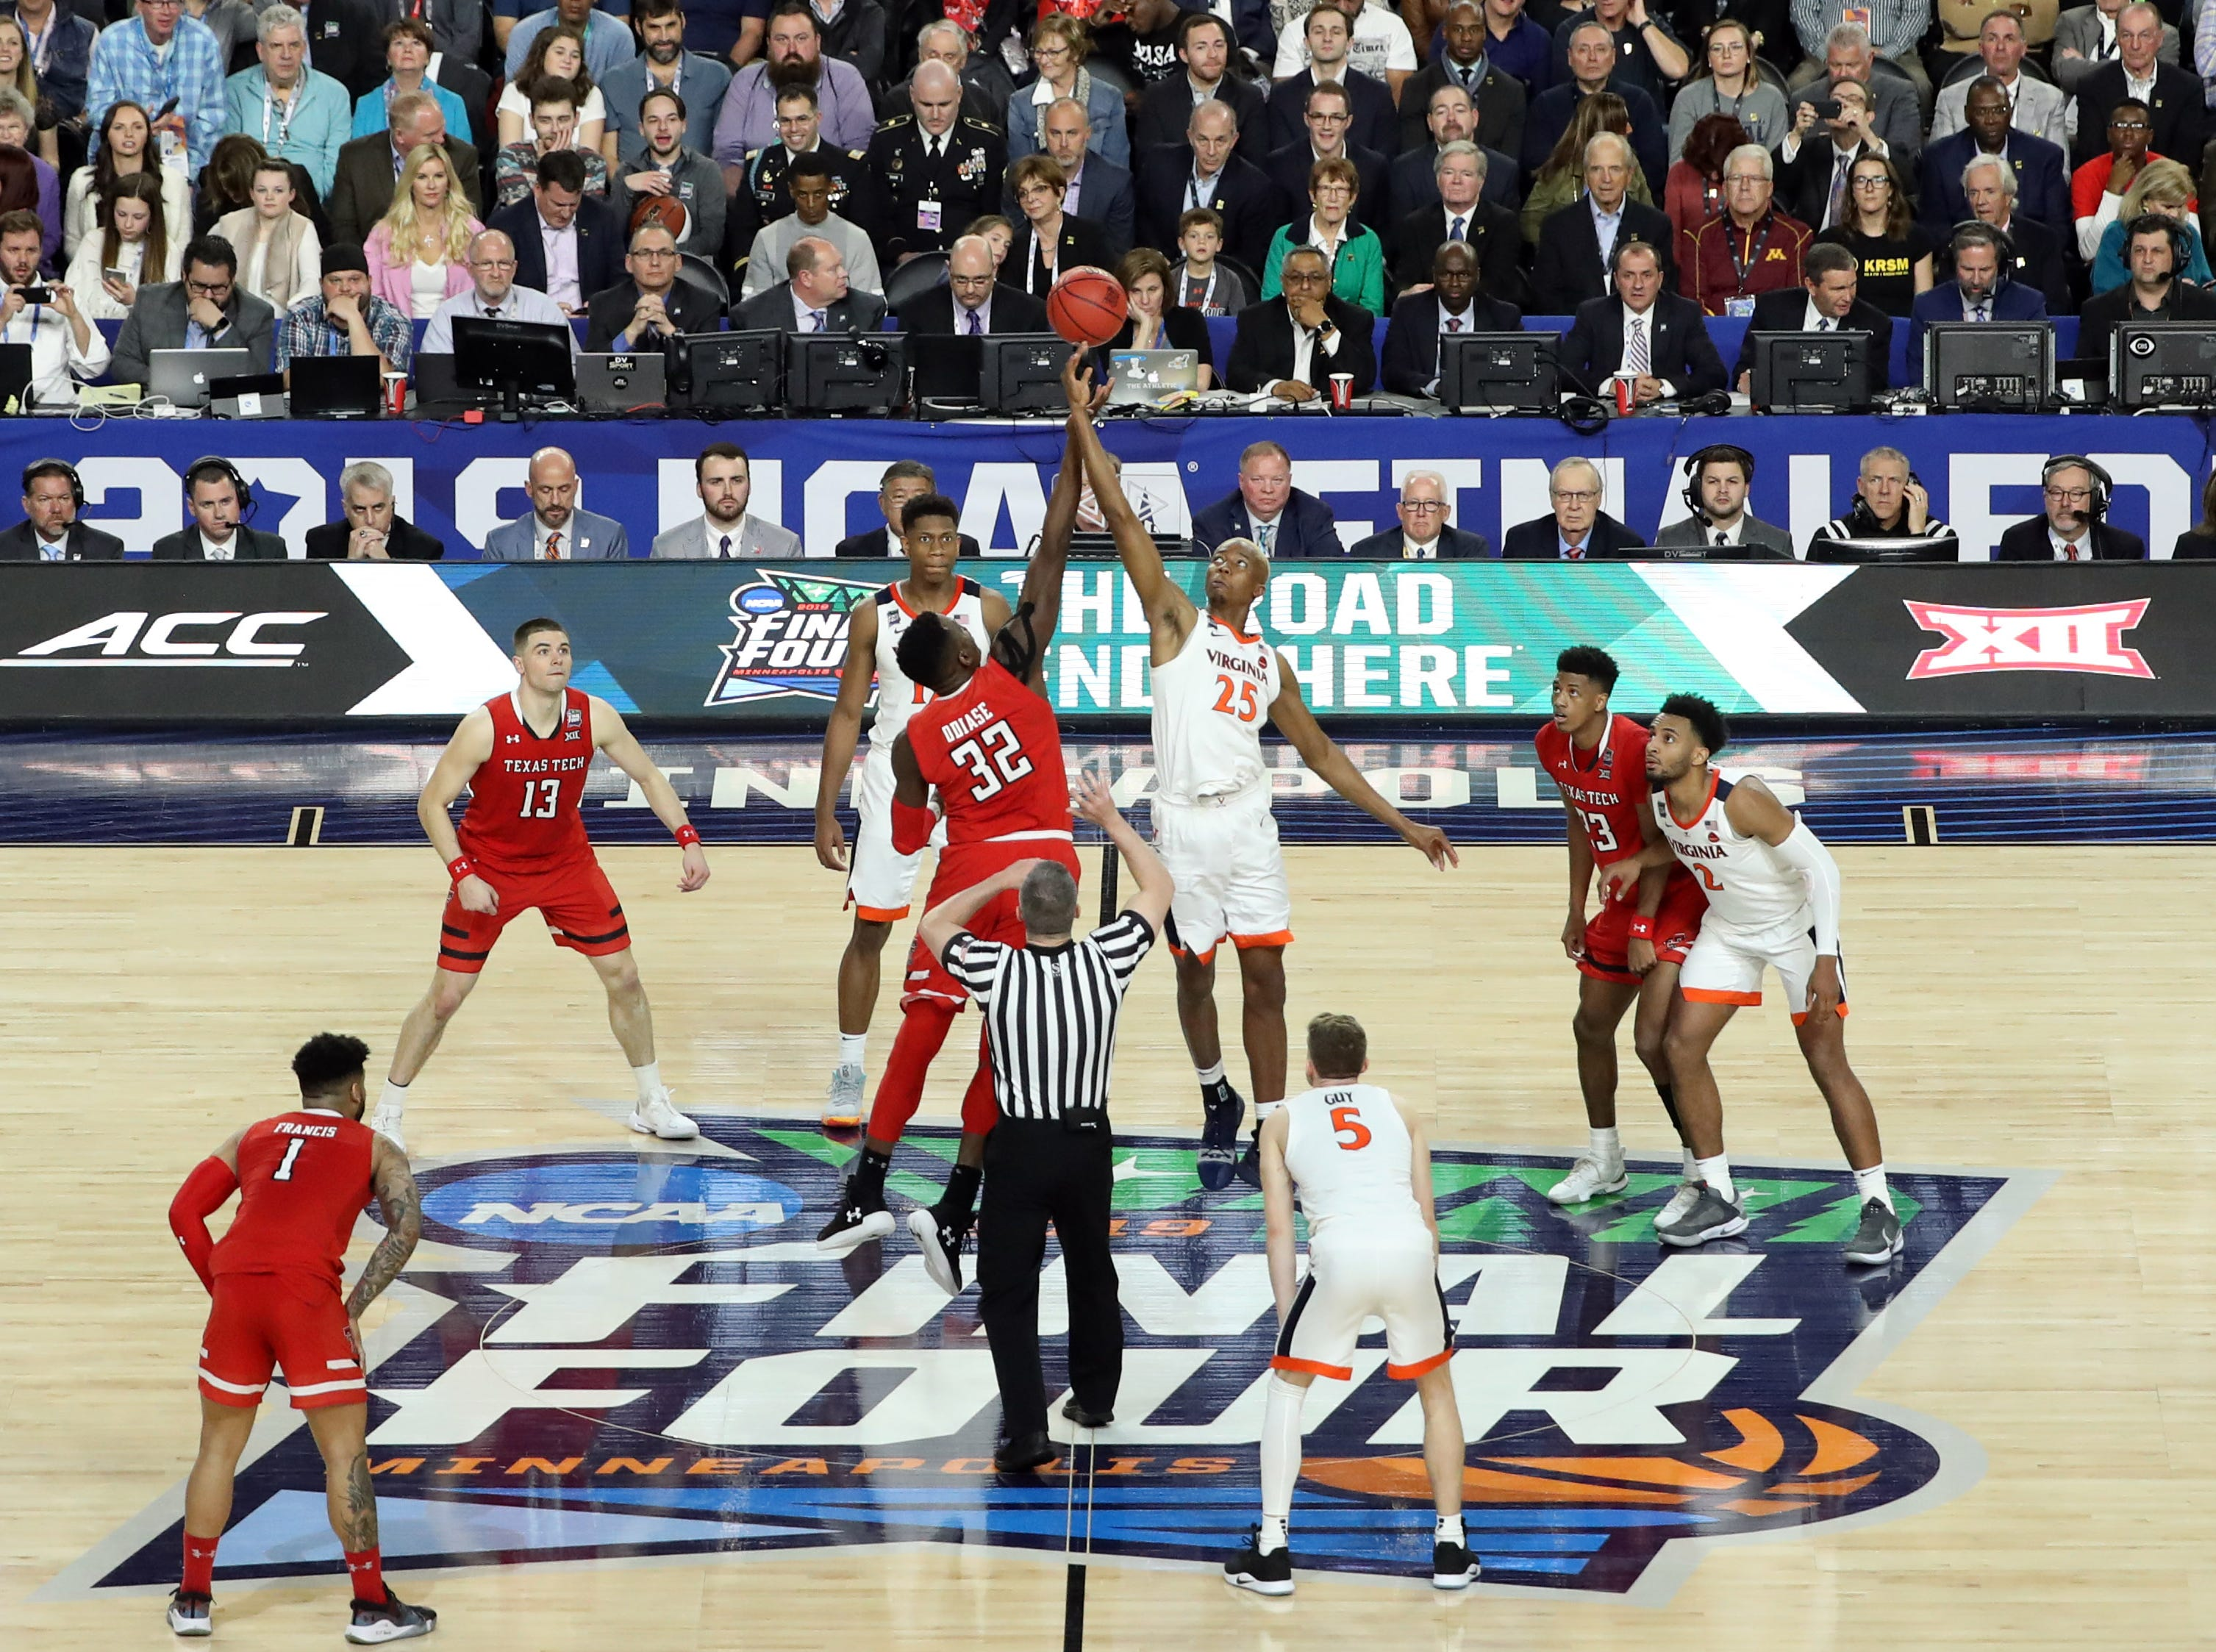 Apr 8, 2019; Minneapolis, MN, USA; The ball is tipped during overtime in the championship game of the 2019 men's Final Four between the Virginia Cavaliers and the Texas Tech Red Raiders at US Bank Stadium. Mandatory Credit: Brace Hemmelgarn-USA TODAY Sports